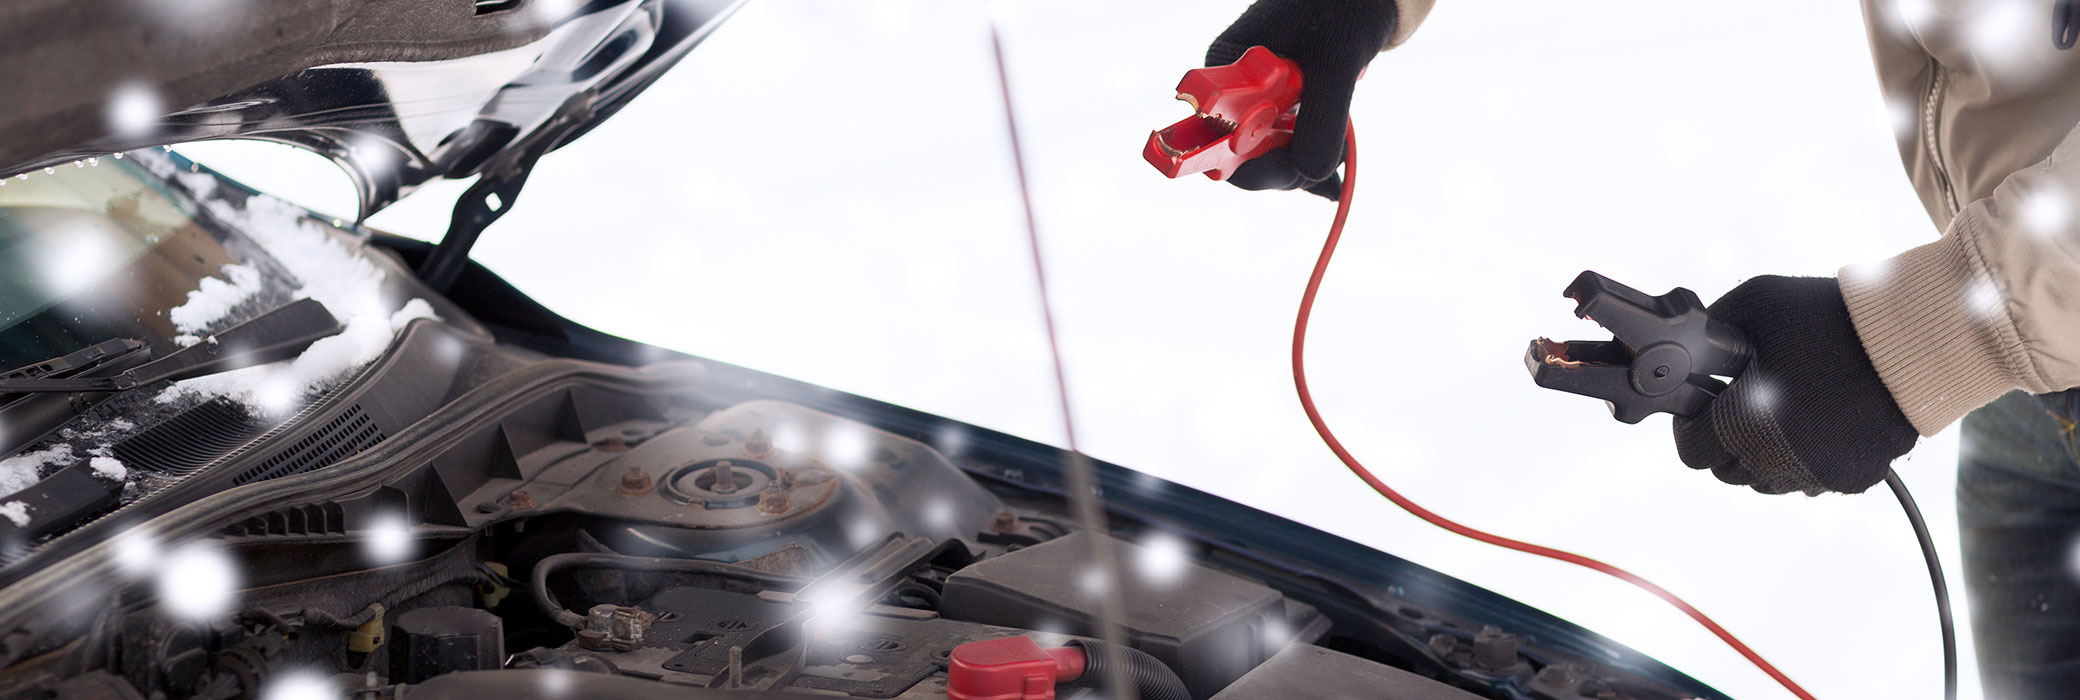 Learn about simple battery testing procedures.